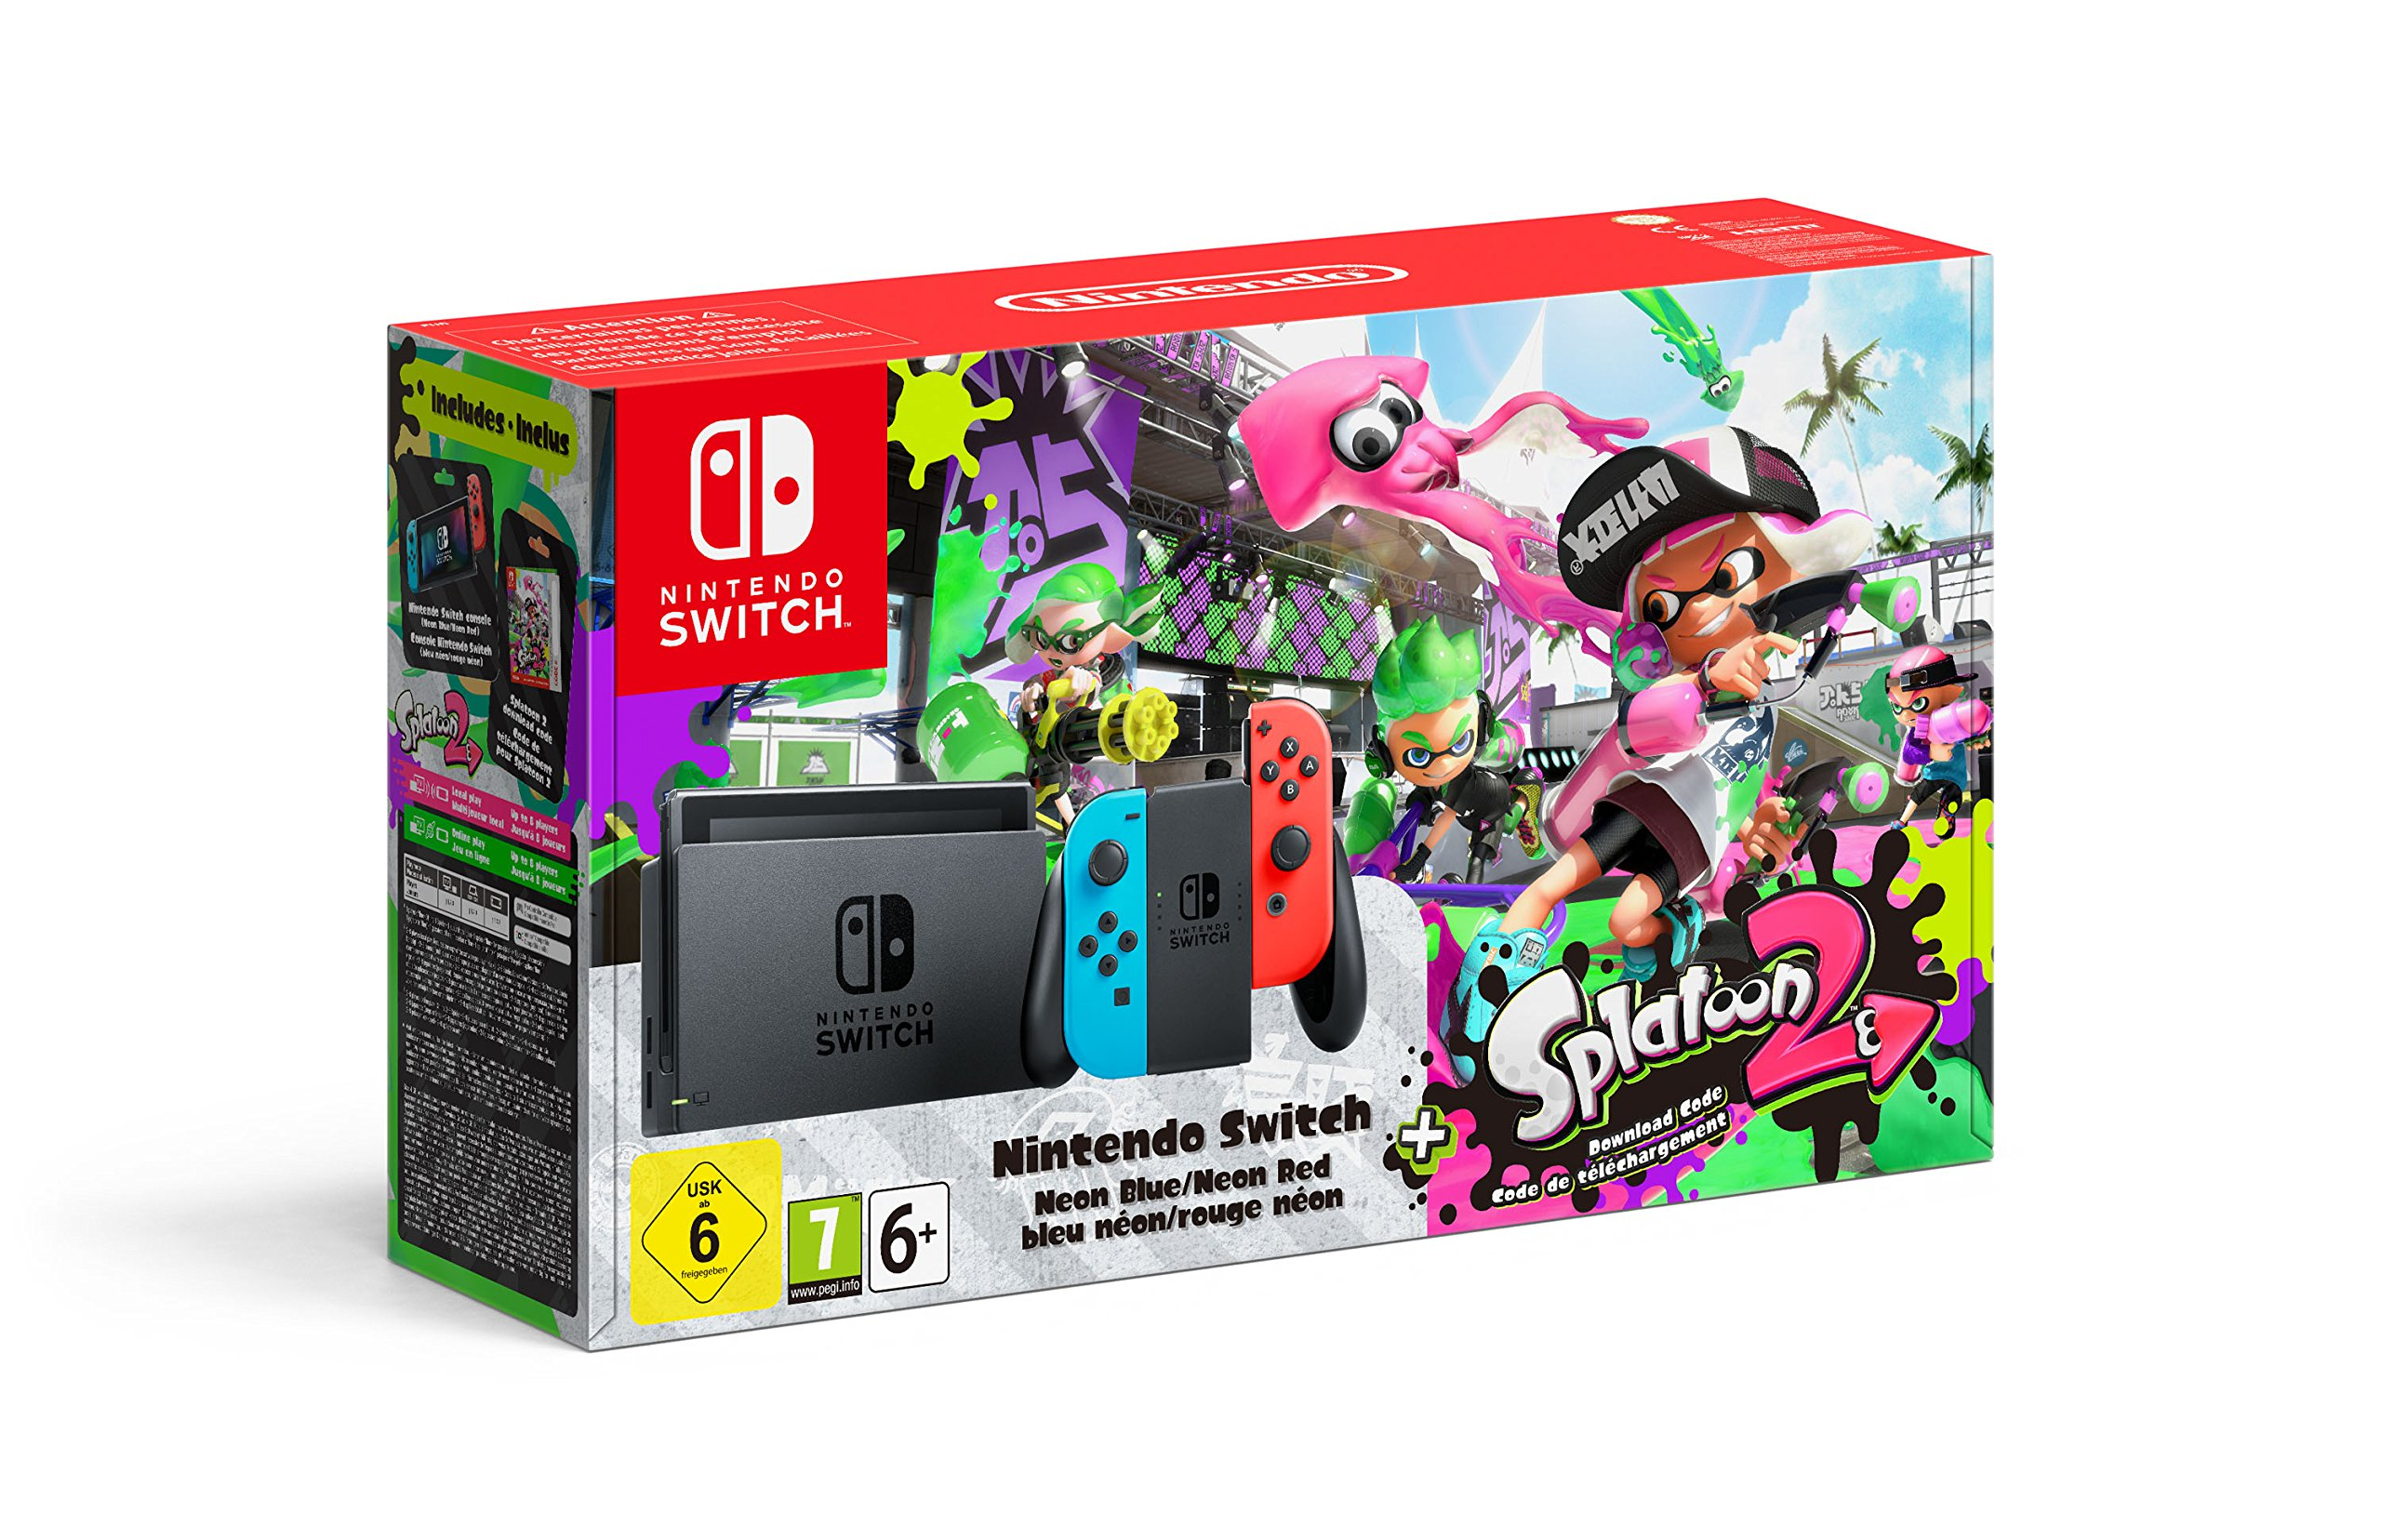 Amazon.es: Nintendo Switch 32GB Neon Red Blue Console Splatoon 2 Bundle [Importación inglesa]